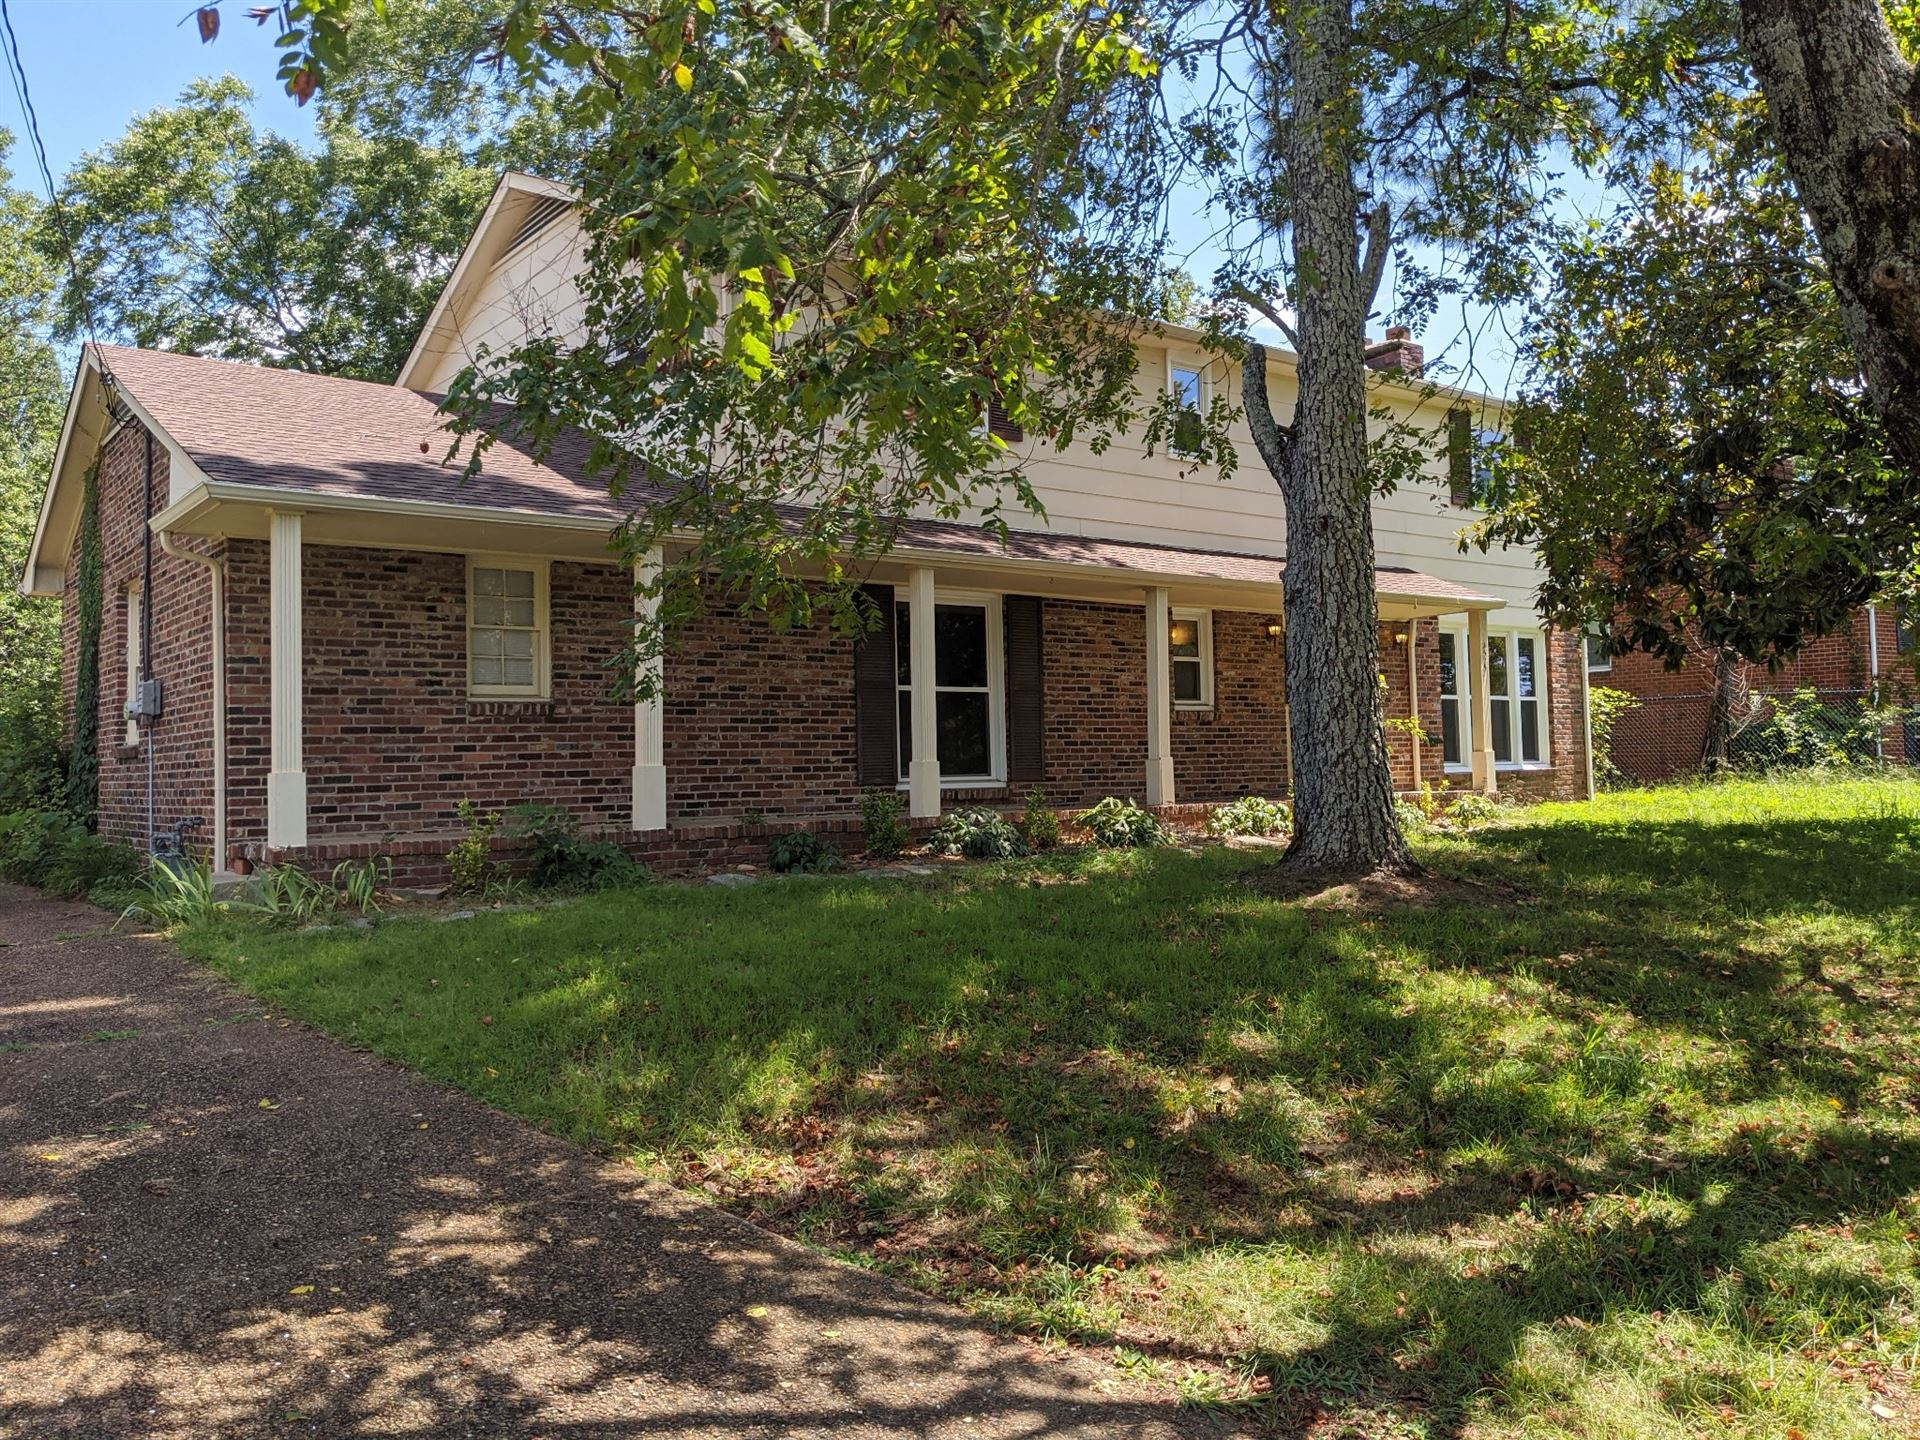 2525 Forest View Dr, Antioch, TN 37013 - MLS#: 2173725